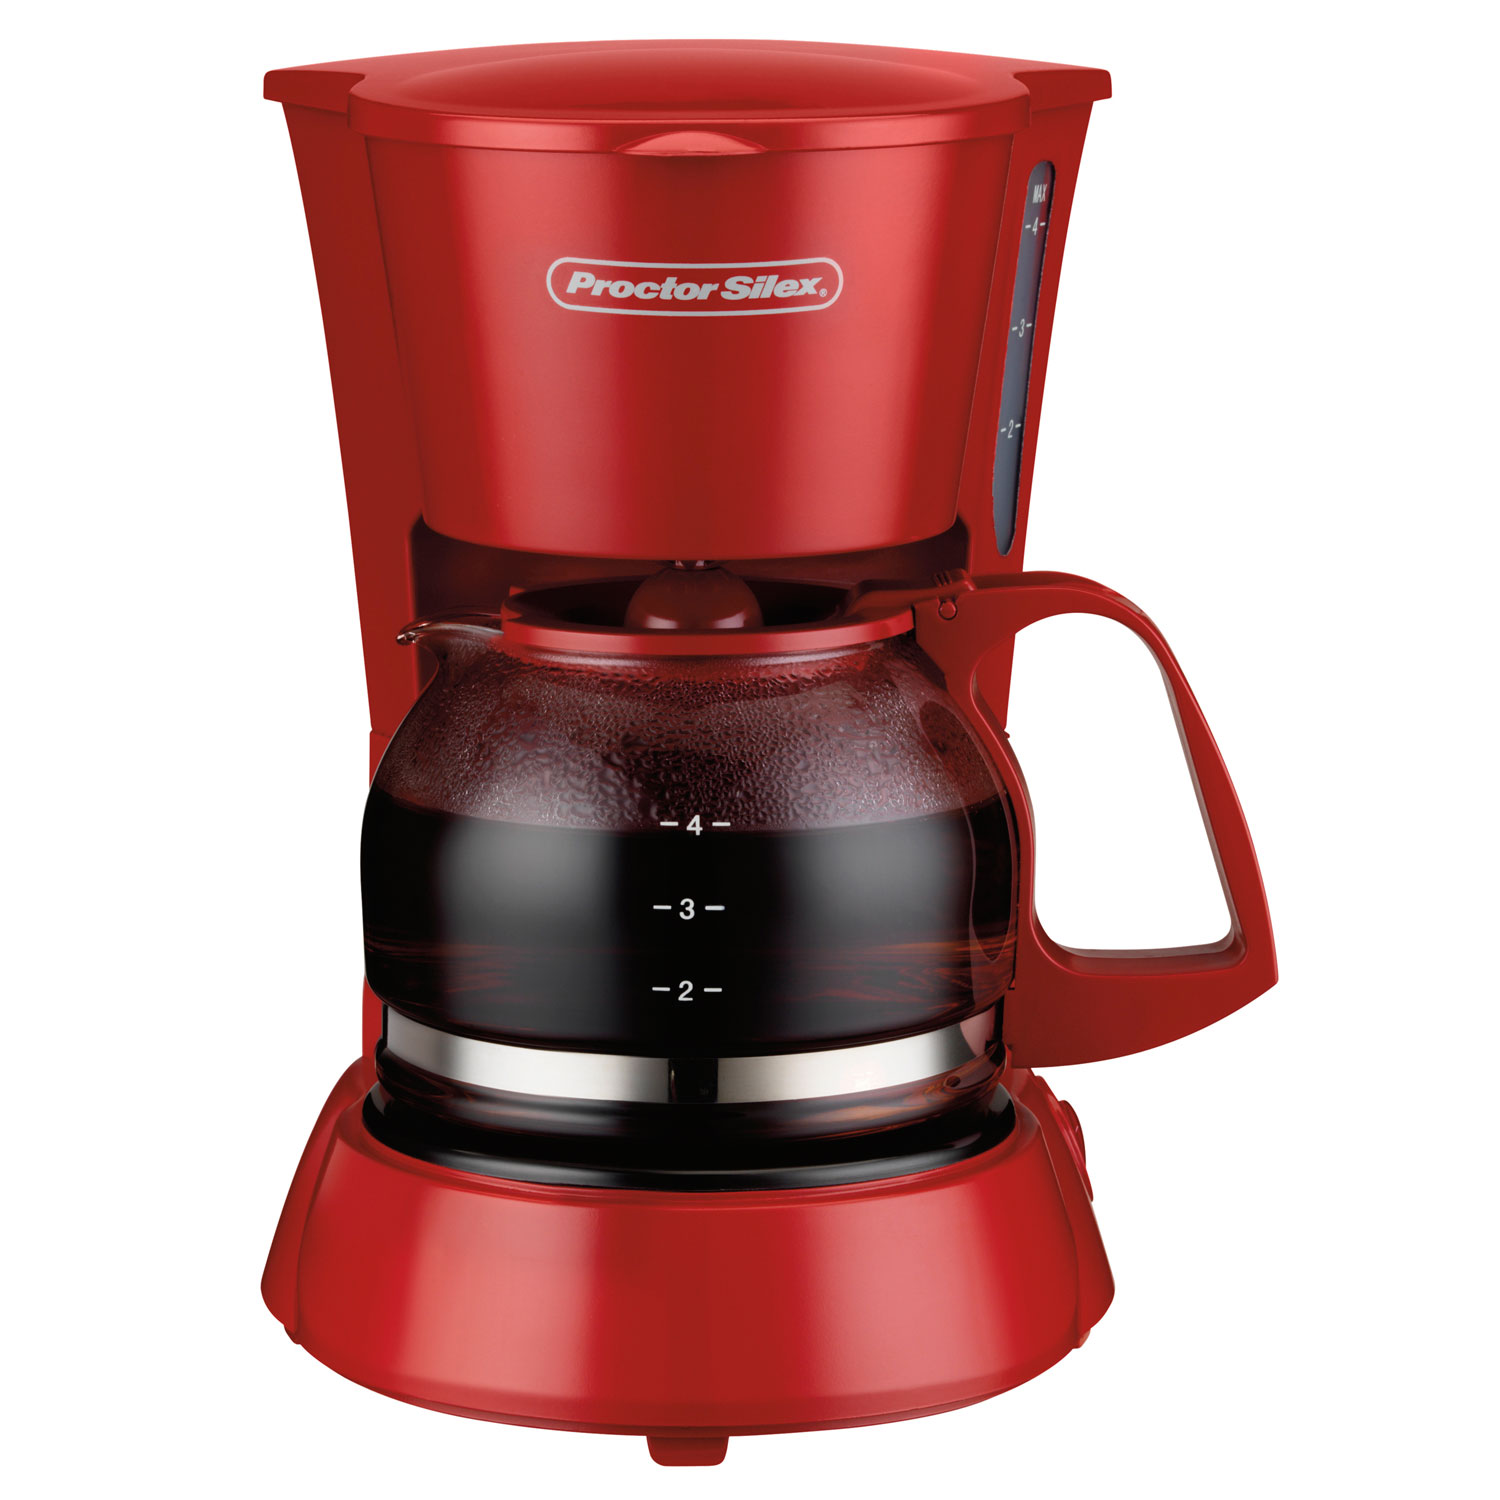 4 Cup Coffee Maker Red Model 48133 Proctor Silex